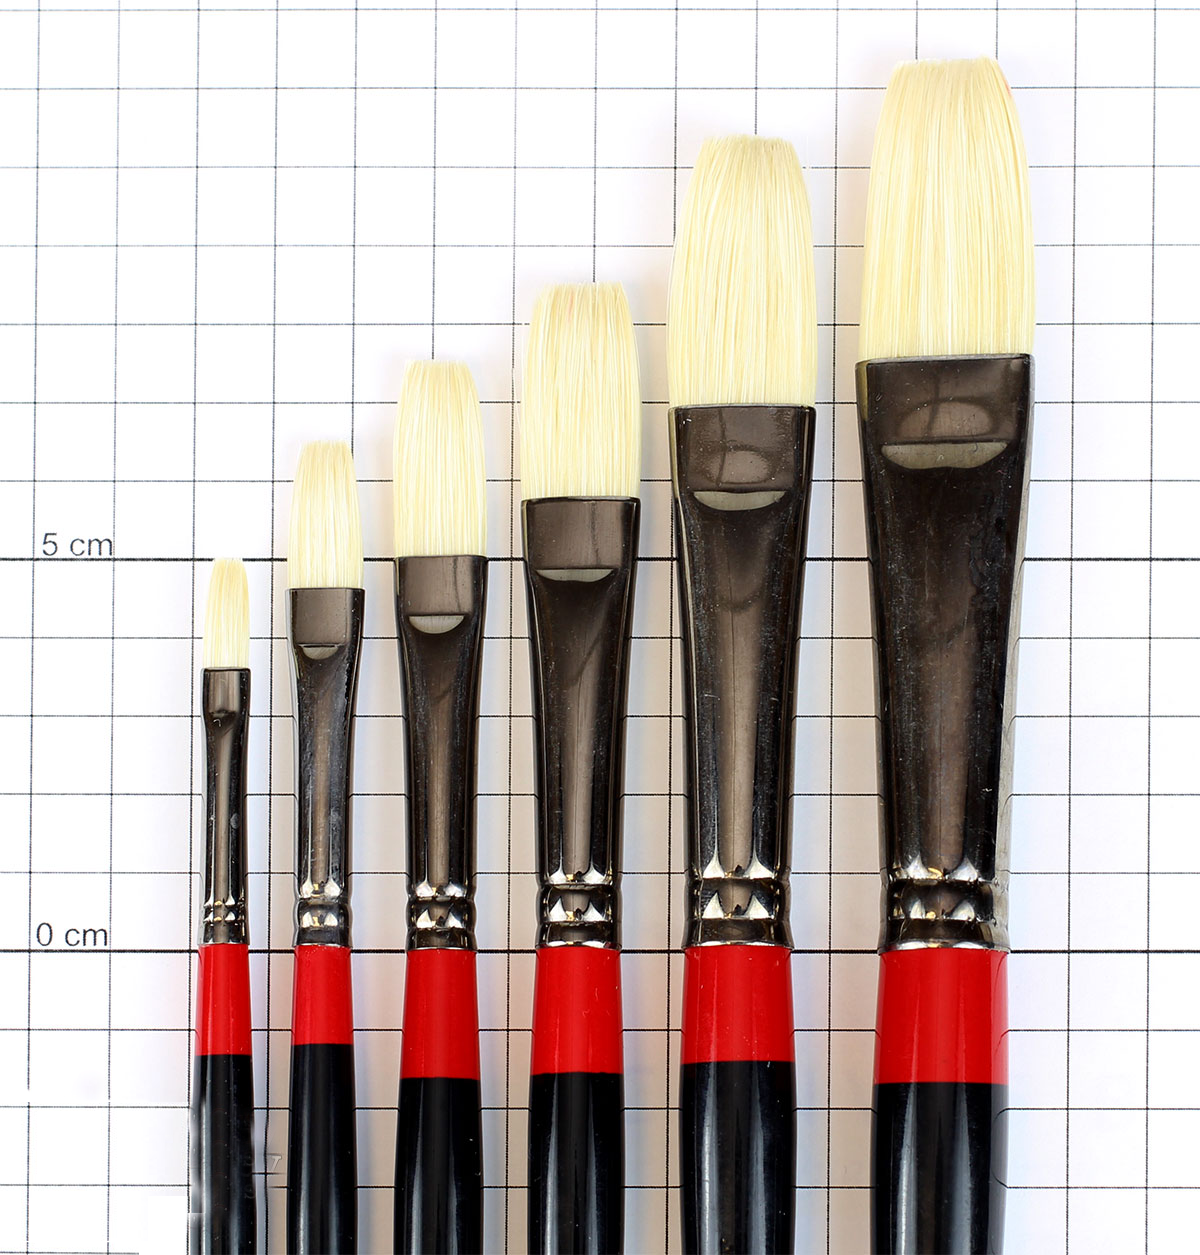 Daler Rowney Georgian Flat Brushes Single Piece